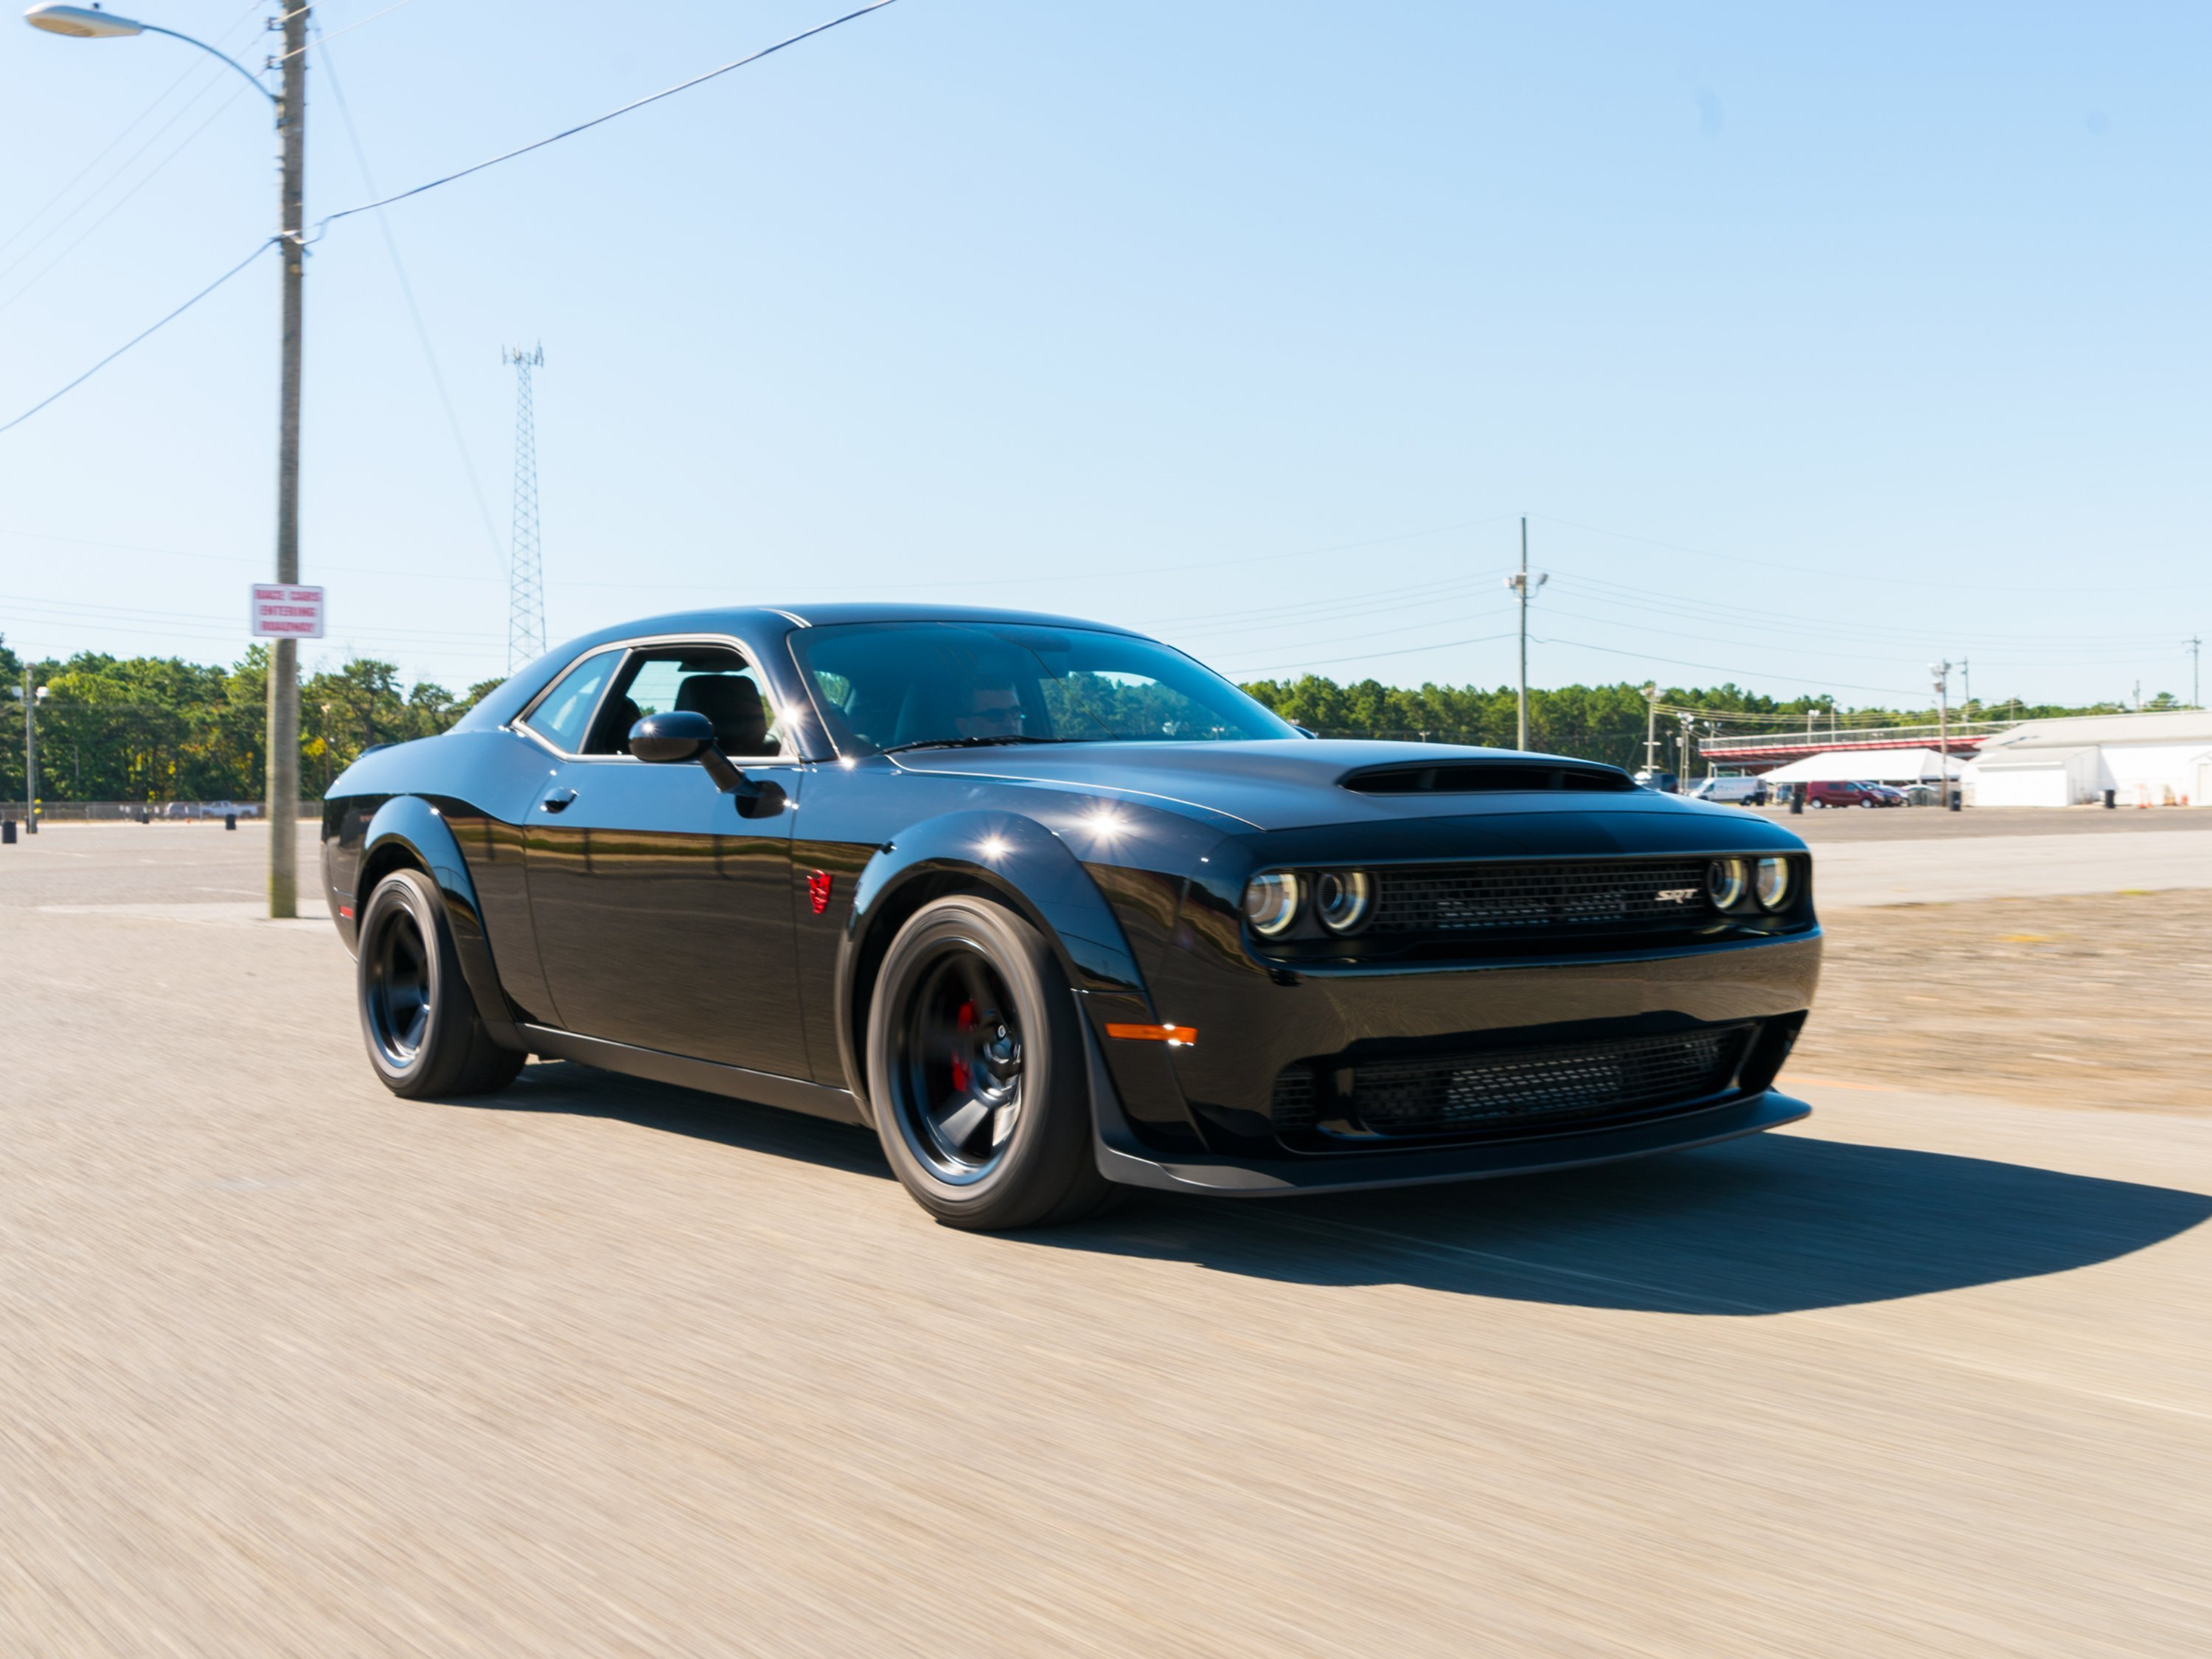 It's an 840 horsepower Dodge Challenger muscle car that has been engineered specifically to do two things: Run the quarter mile in under 10 seconds and lift its front wheels off the ground during a hard launch.